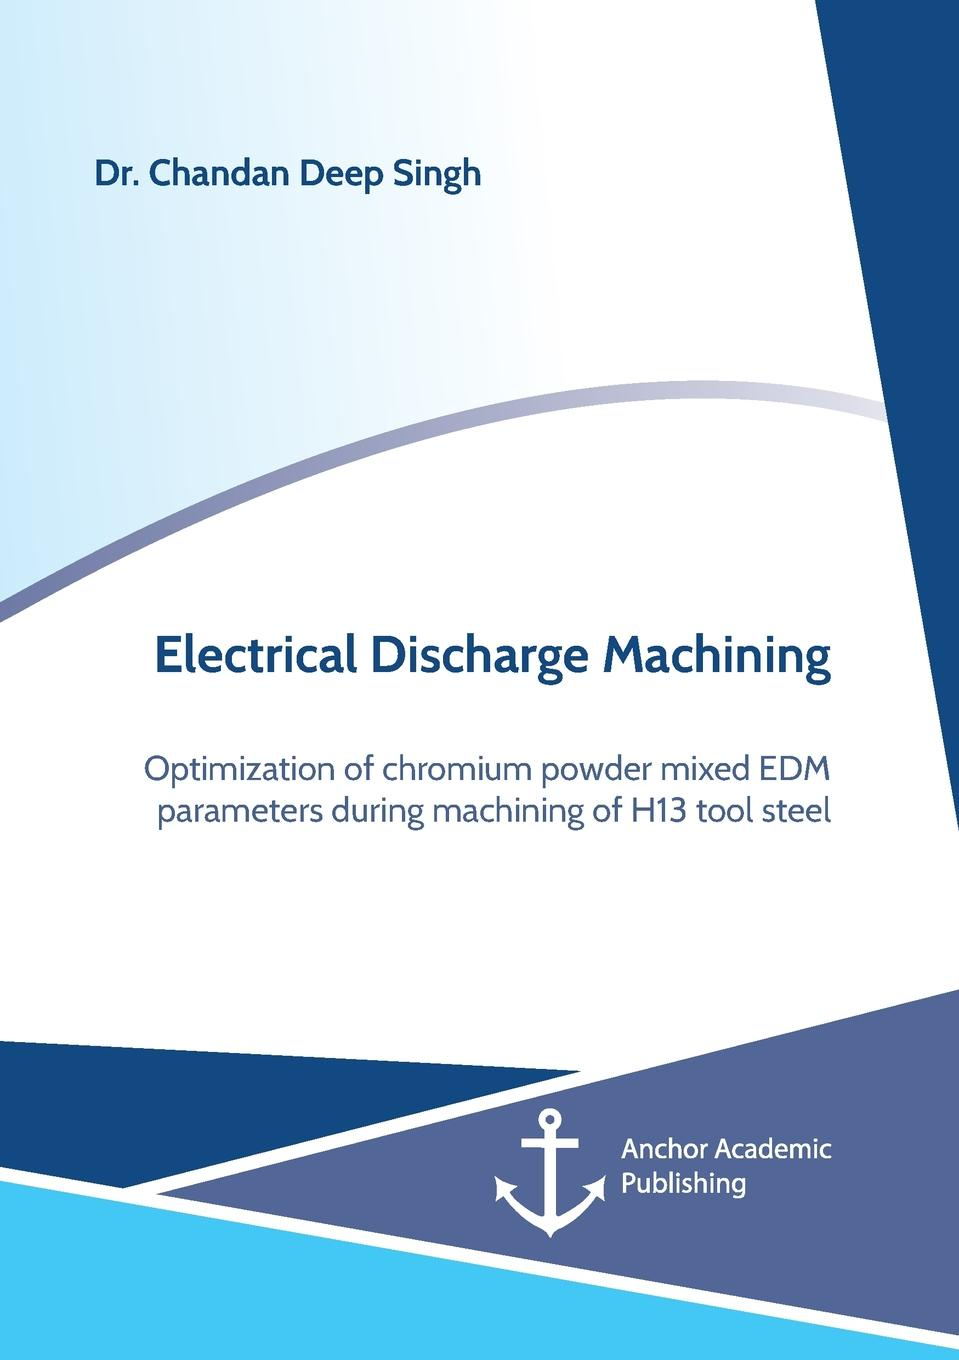 Chandan Deep Singh Electrical Discharge Machining. Optimization of chromium powder mixed EDM parameters during machining of H13 tool steel 2pcs lot ene kb930bf a1 bga management computer input and output the start up circuit of input and output